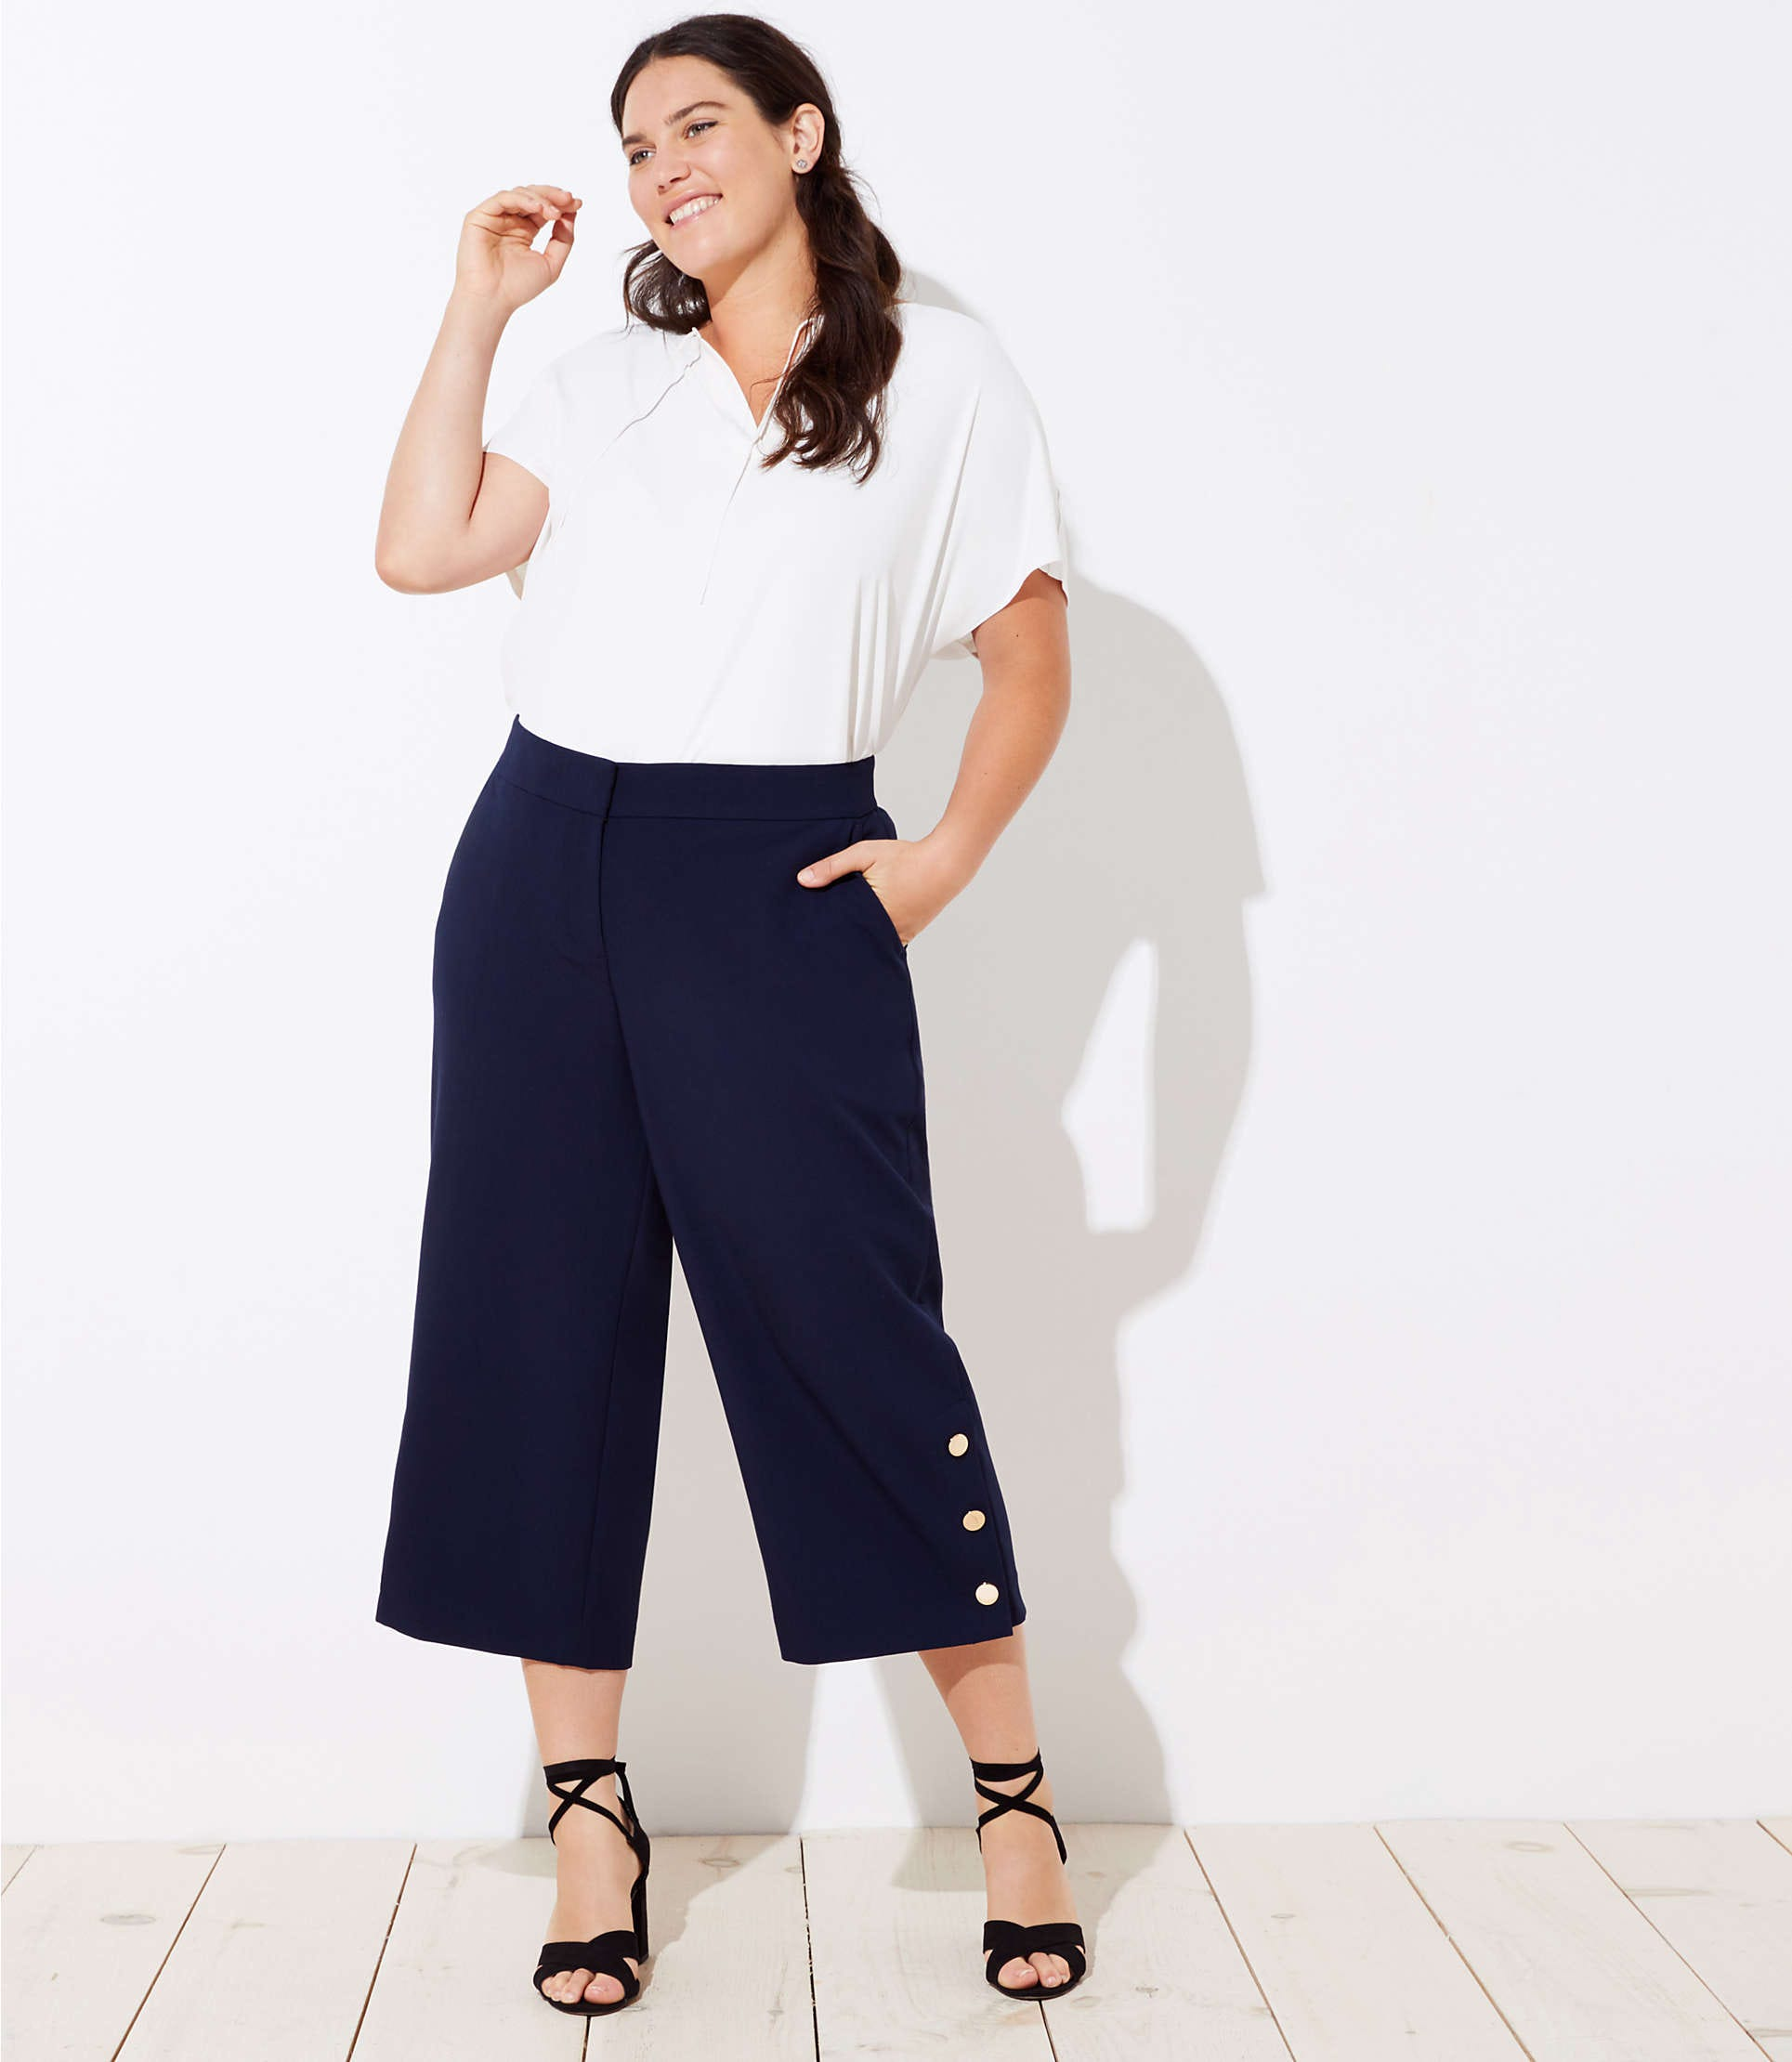 aed26273983 Best Plus Size Business Casual Wear To Shop 2018